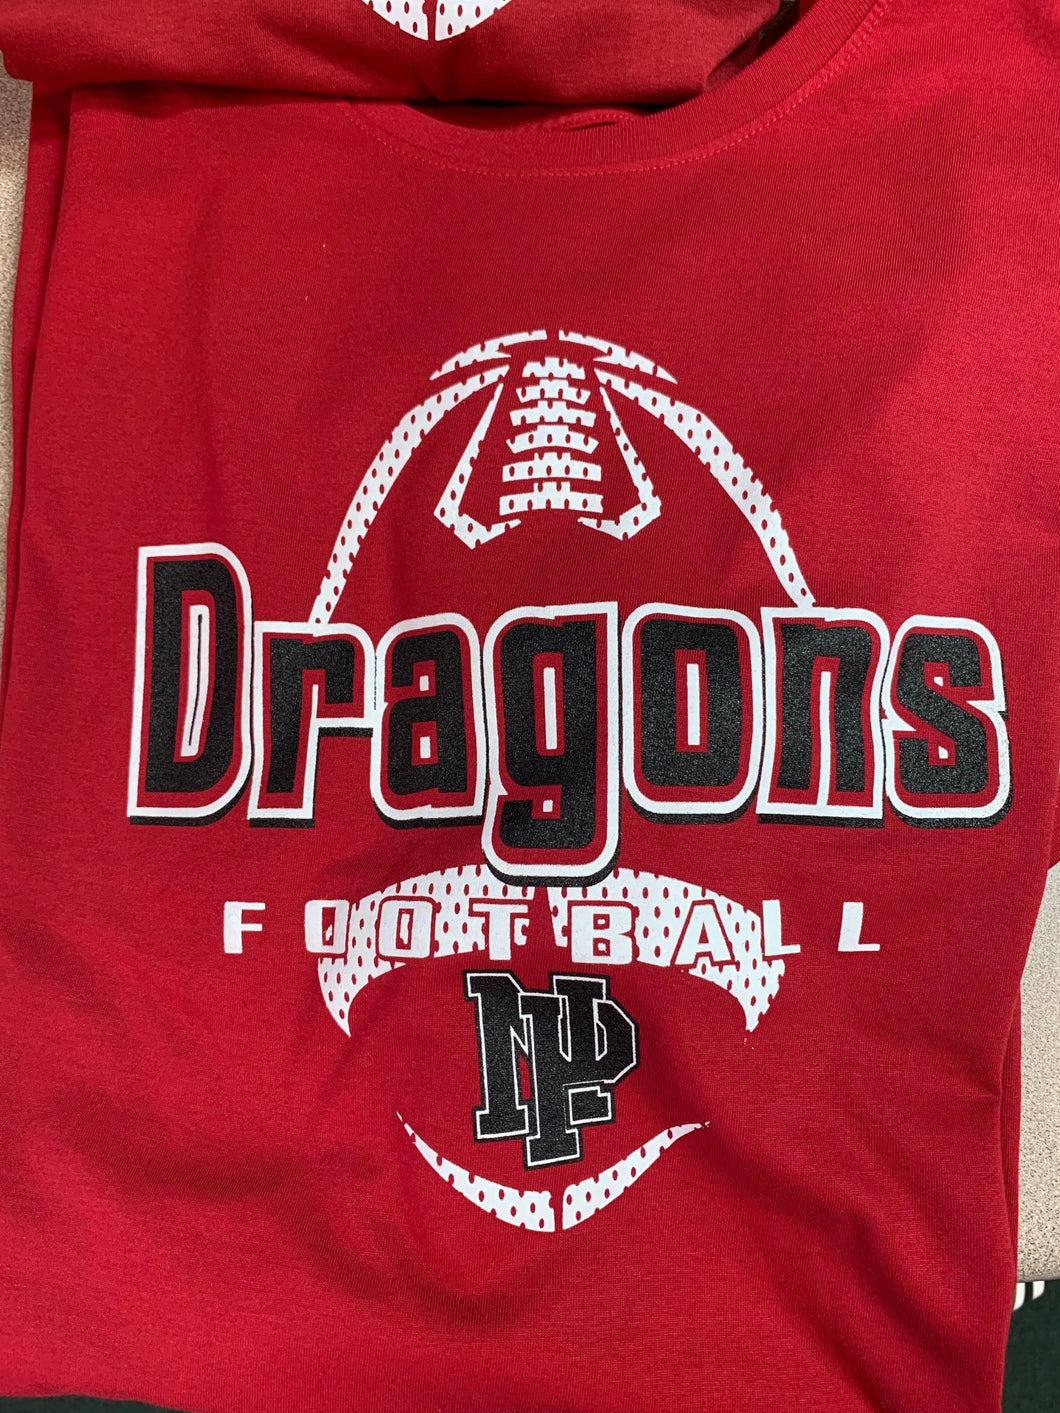 Nike Dargons Football T-Shirt